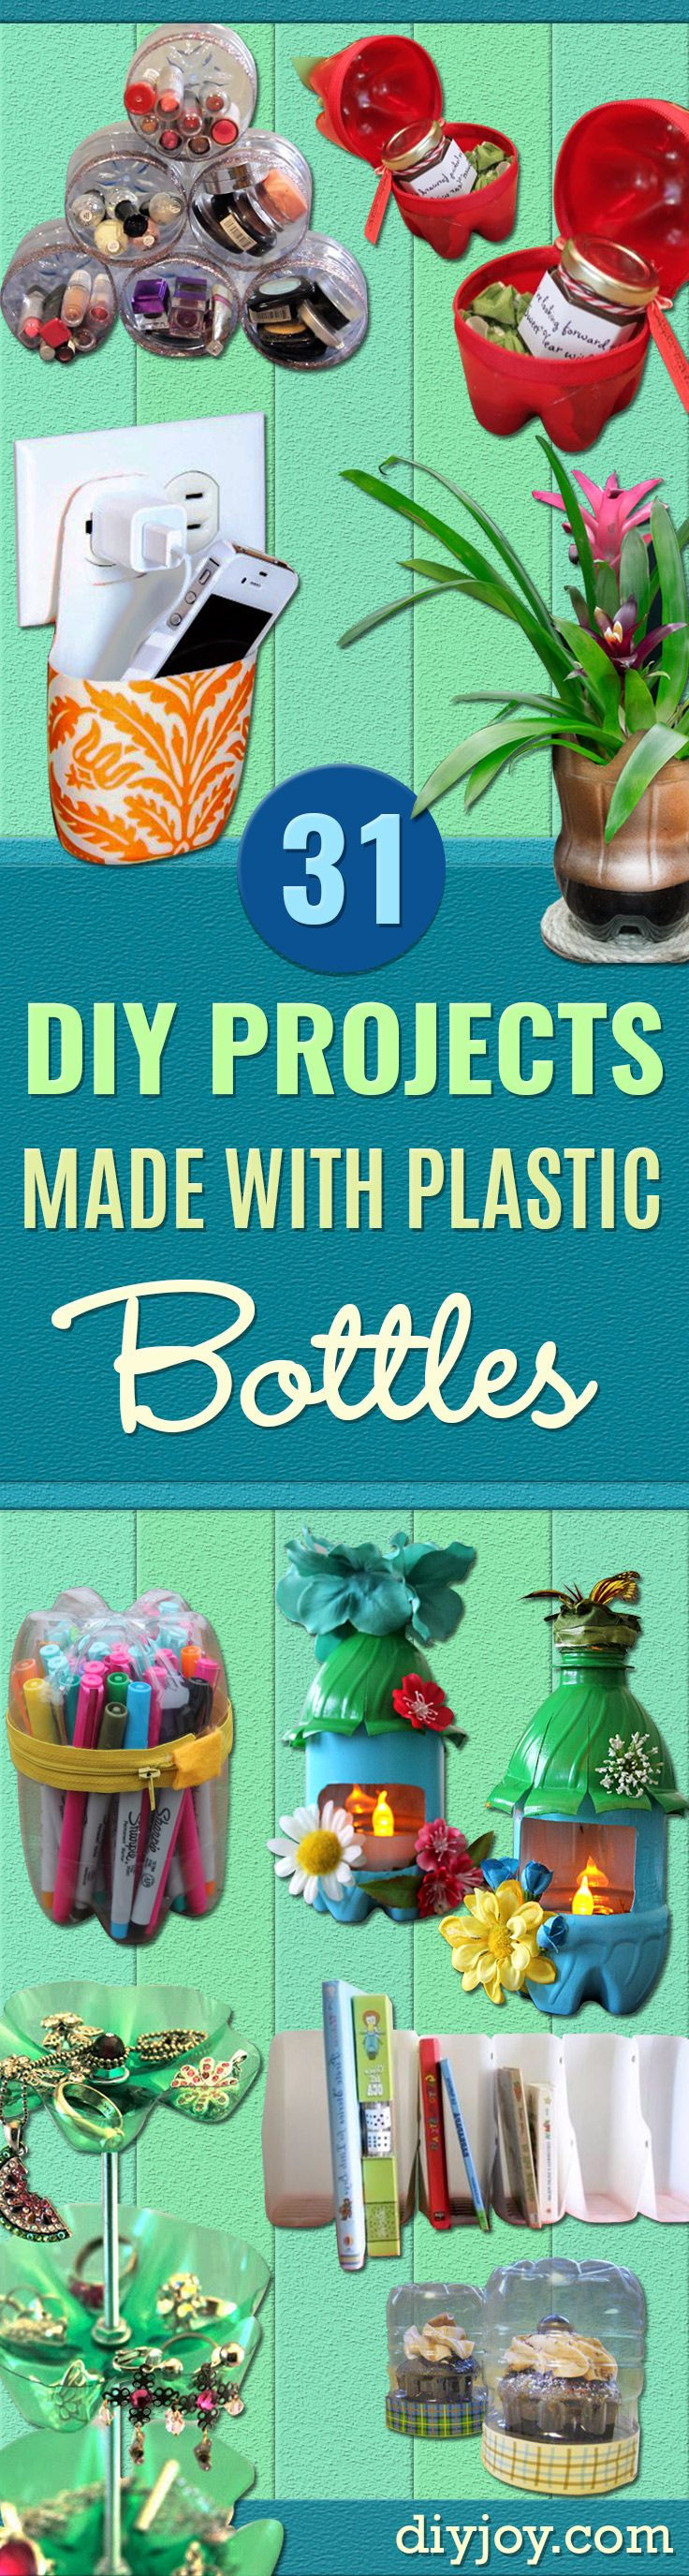 17 best images about soda bottle on pinterest reuse for Creativity with plastic bottles